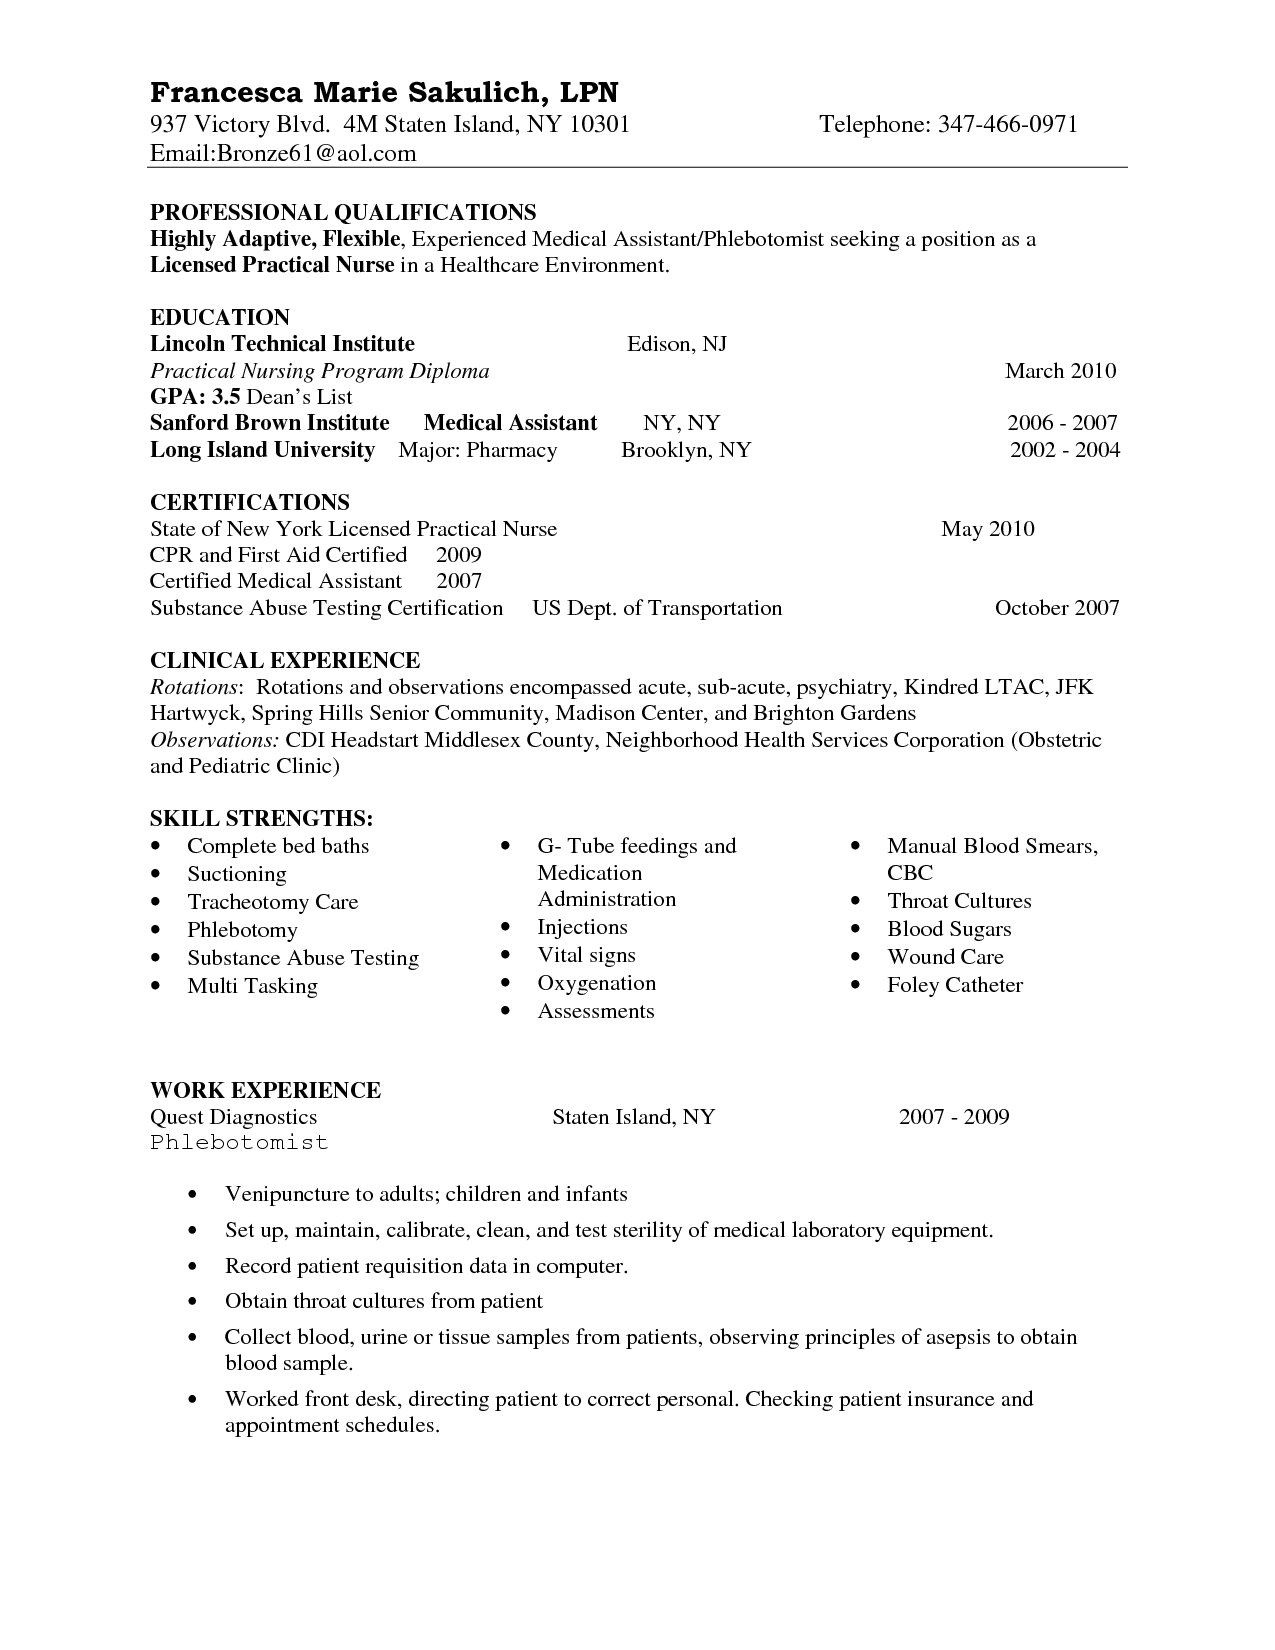 Entry Level LPN Resume Sample | Nursing | Pinterest | Nursing resume ...